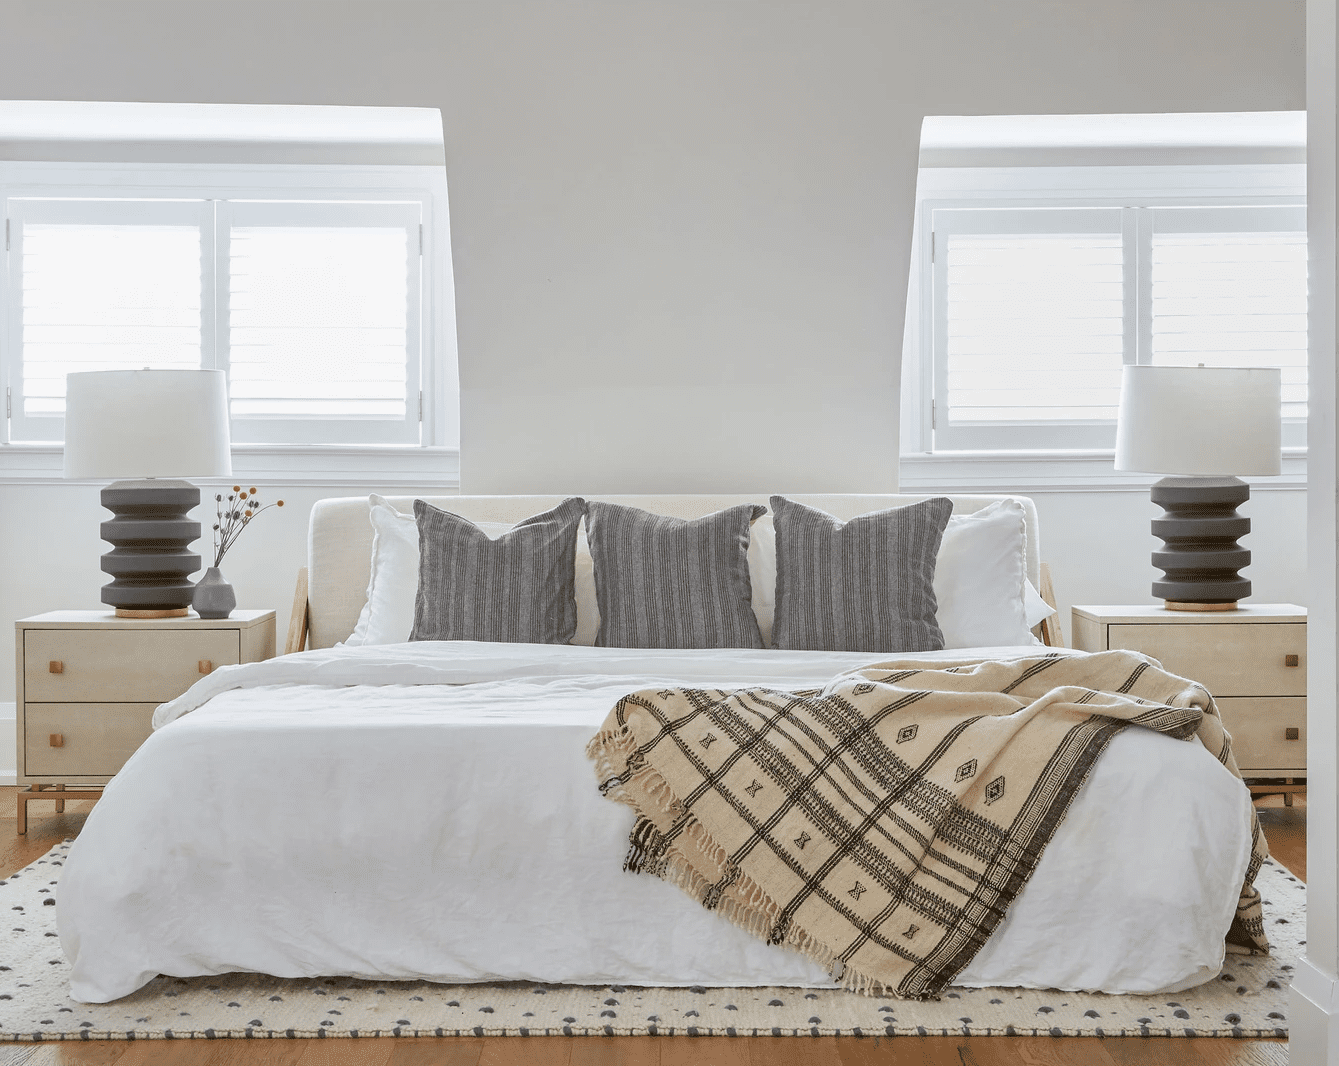 Neutral bedroom with gray pillows and lamps.